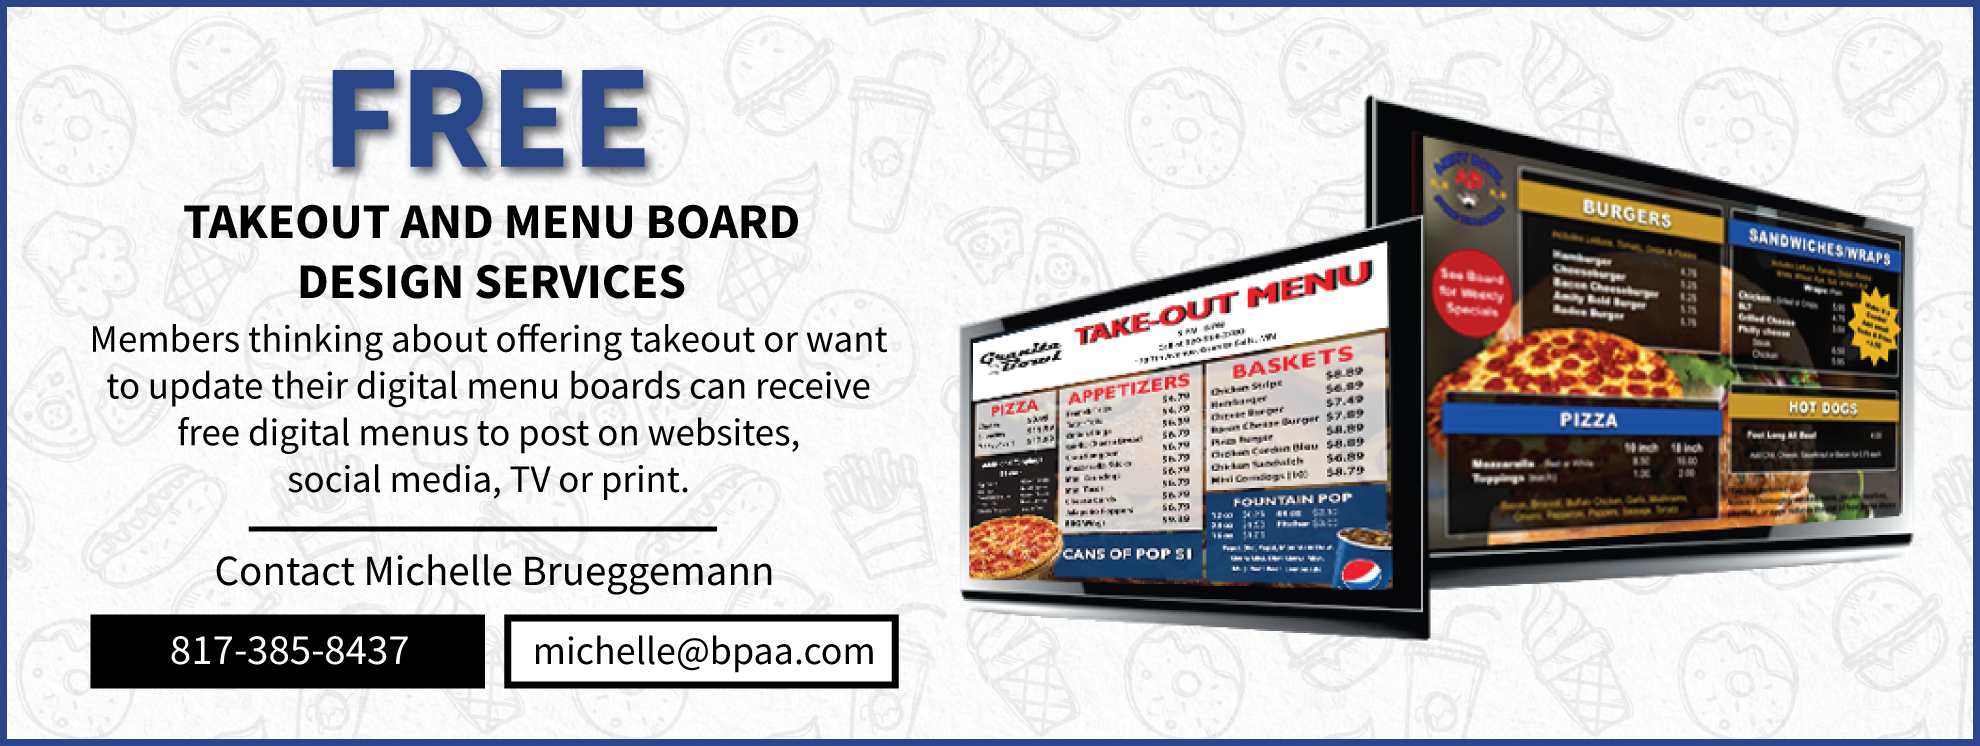 Menu board and takeout